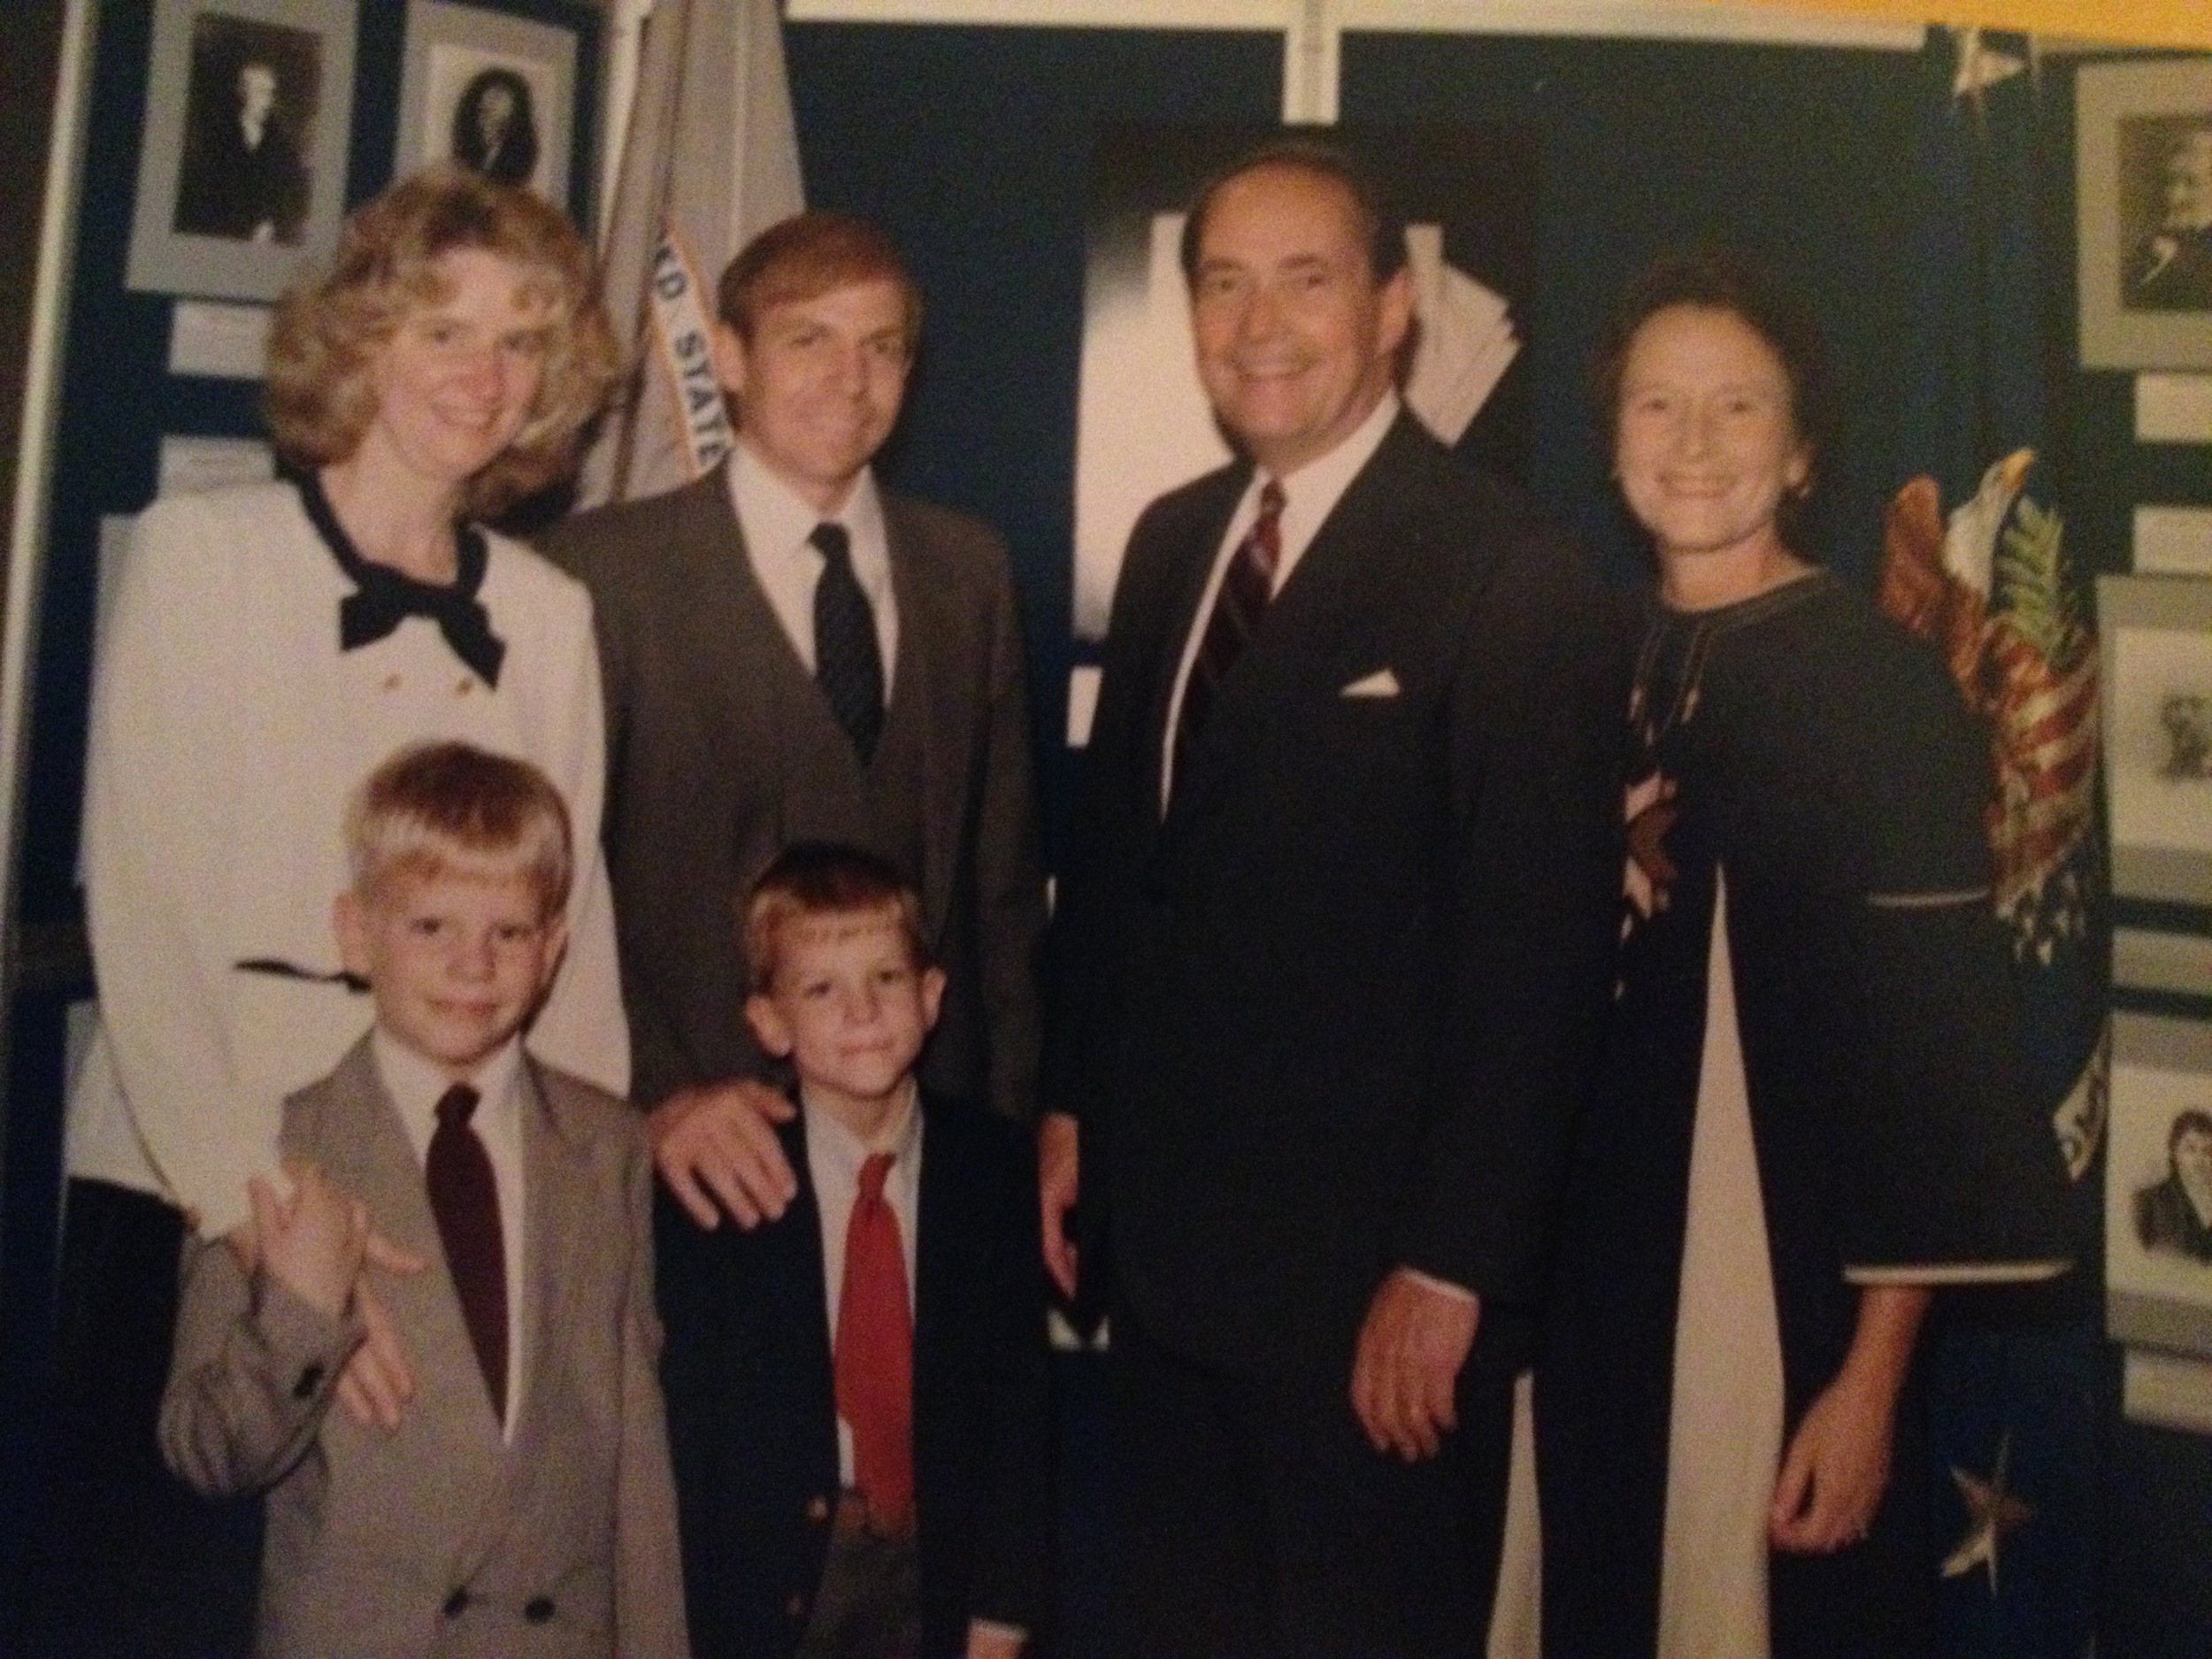 United States Attorney Bob Edmunds and his family with United States Attorney General Richard Thornburgh, circa 1990